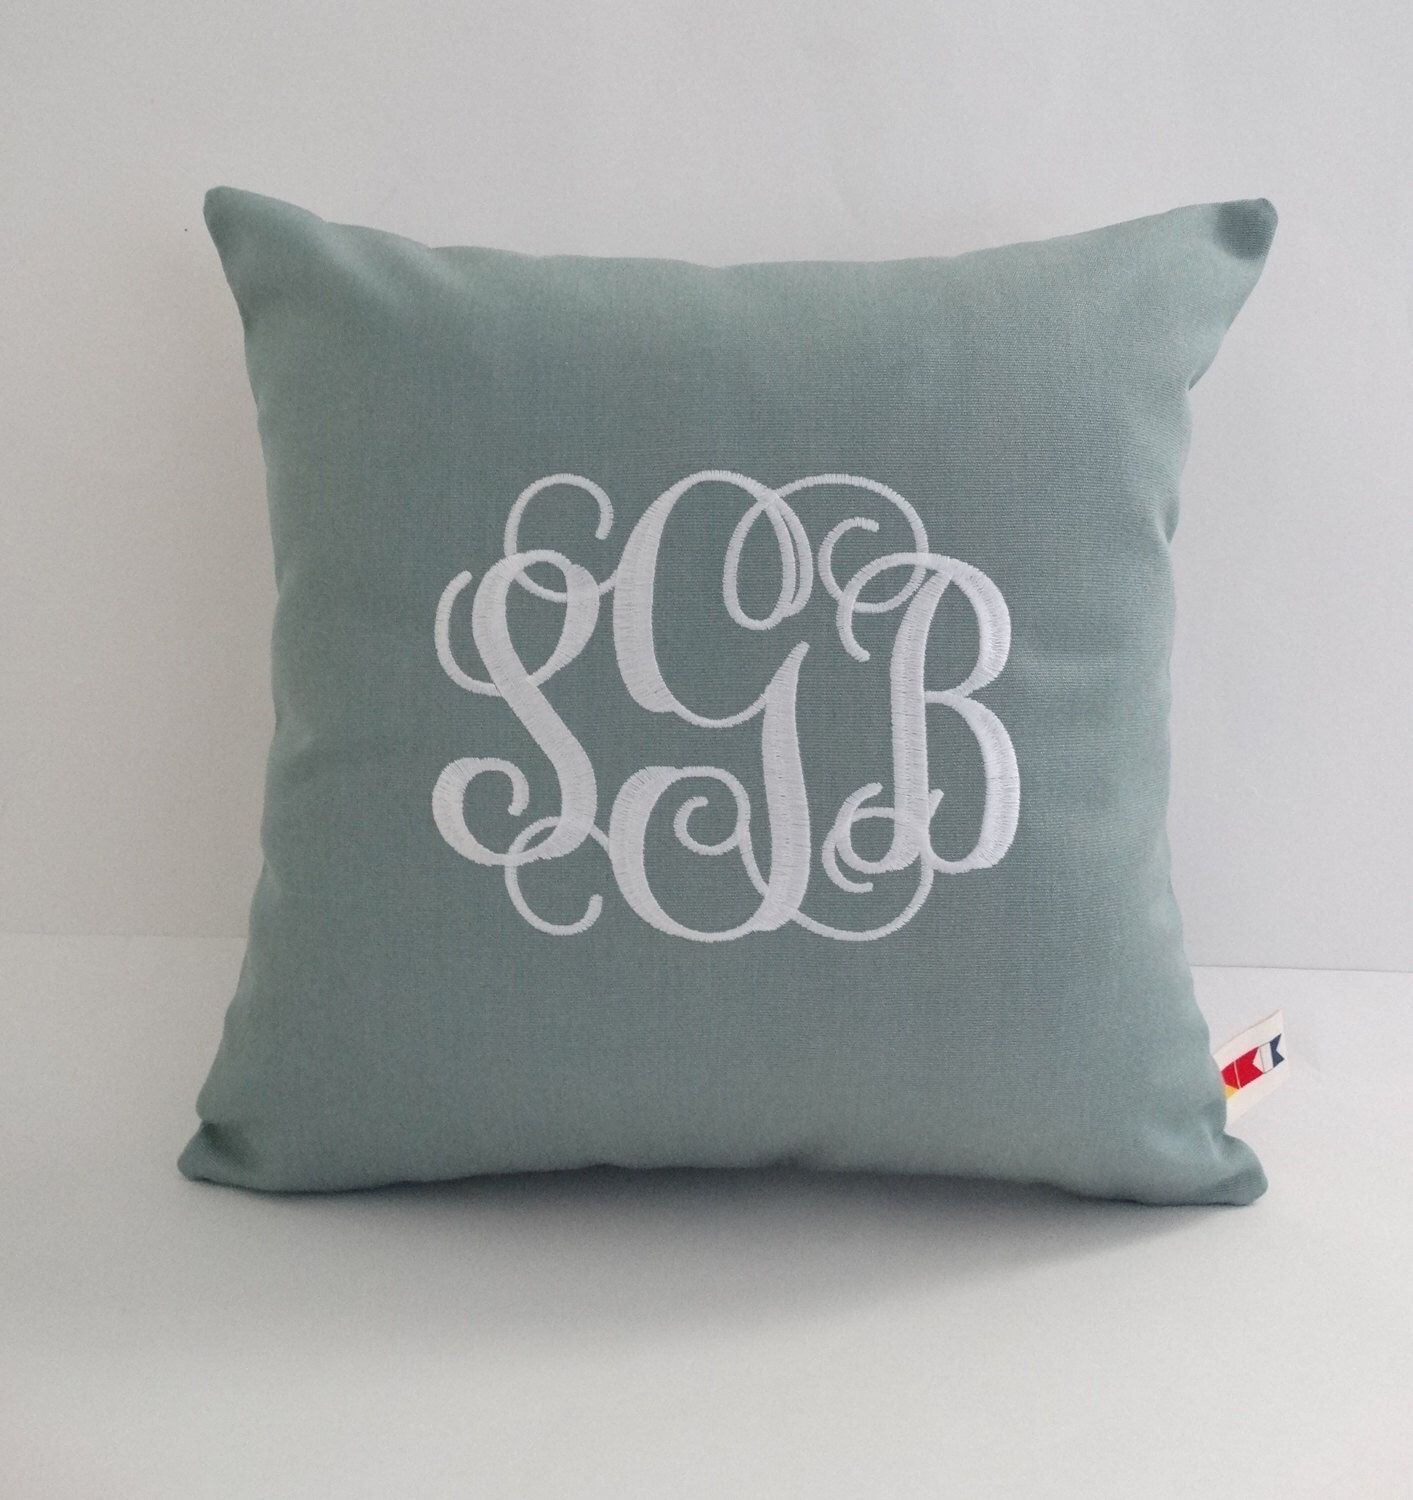 Initial Pillow Covers Beauteous Wedding Monogram Pillow Cover Sunbrella Indoor Outdoor Embroidered Inspiration Design